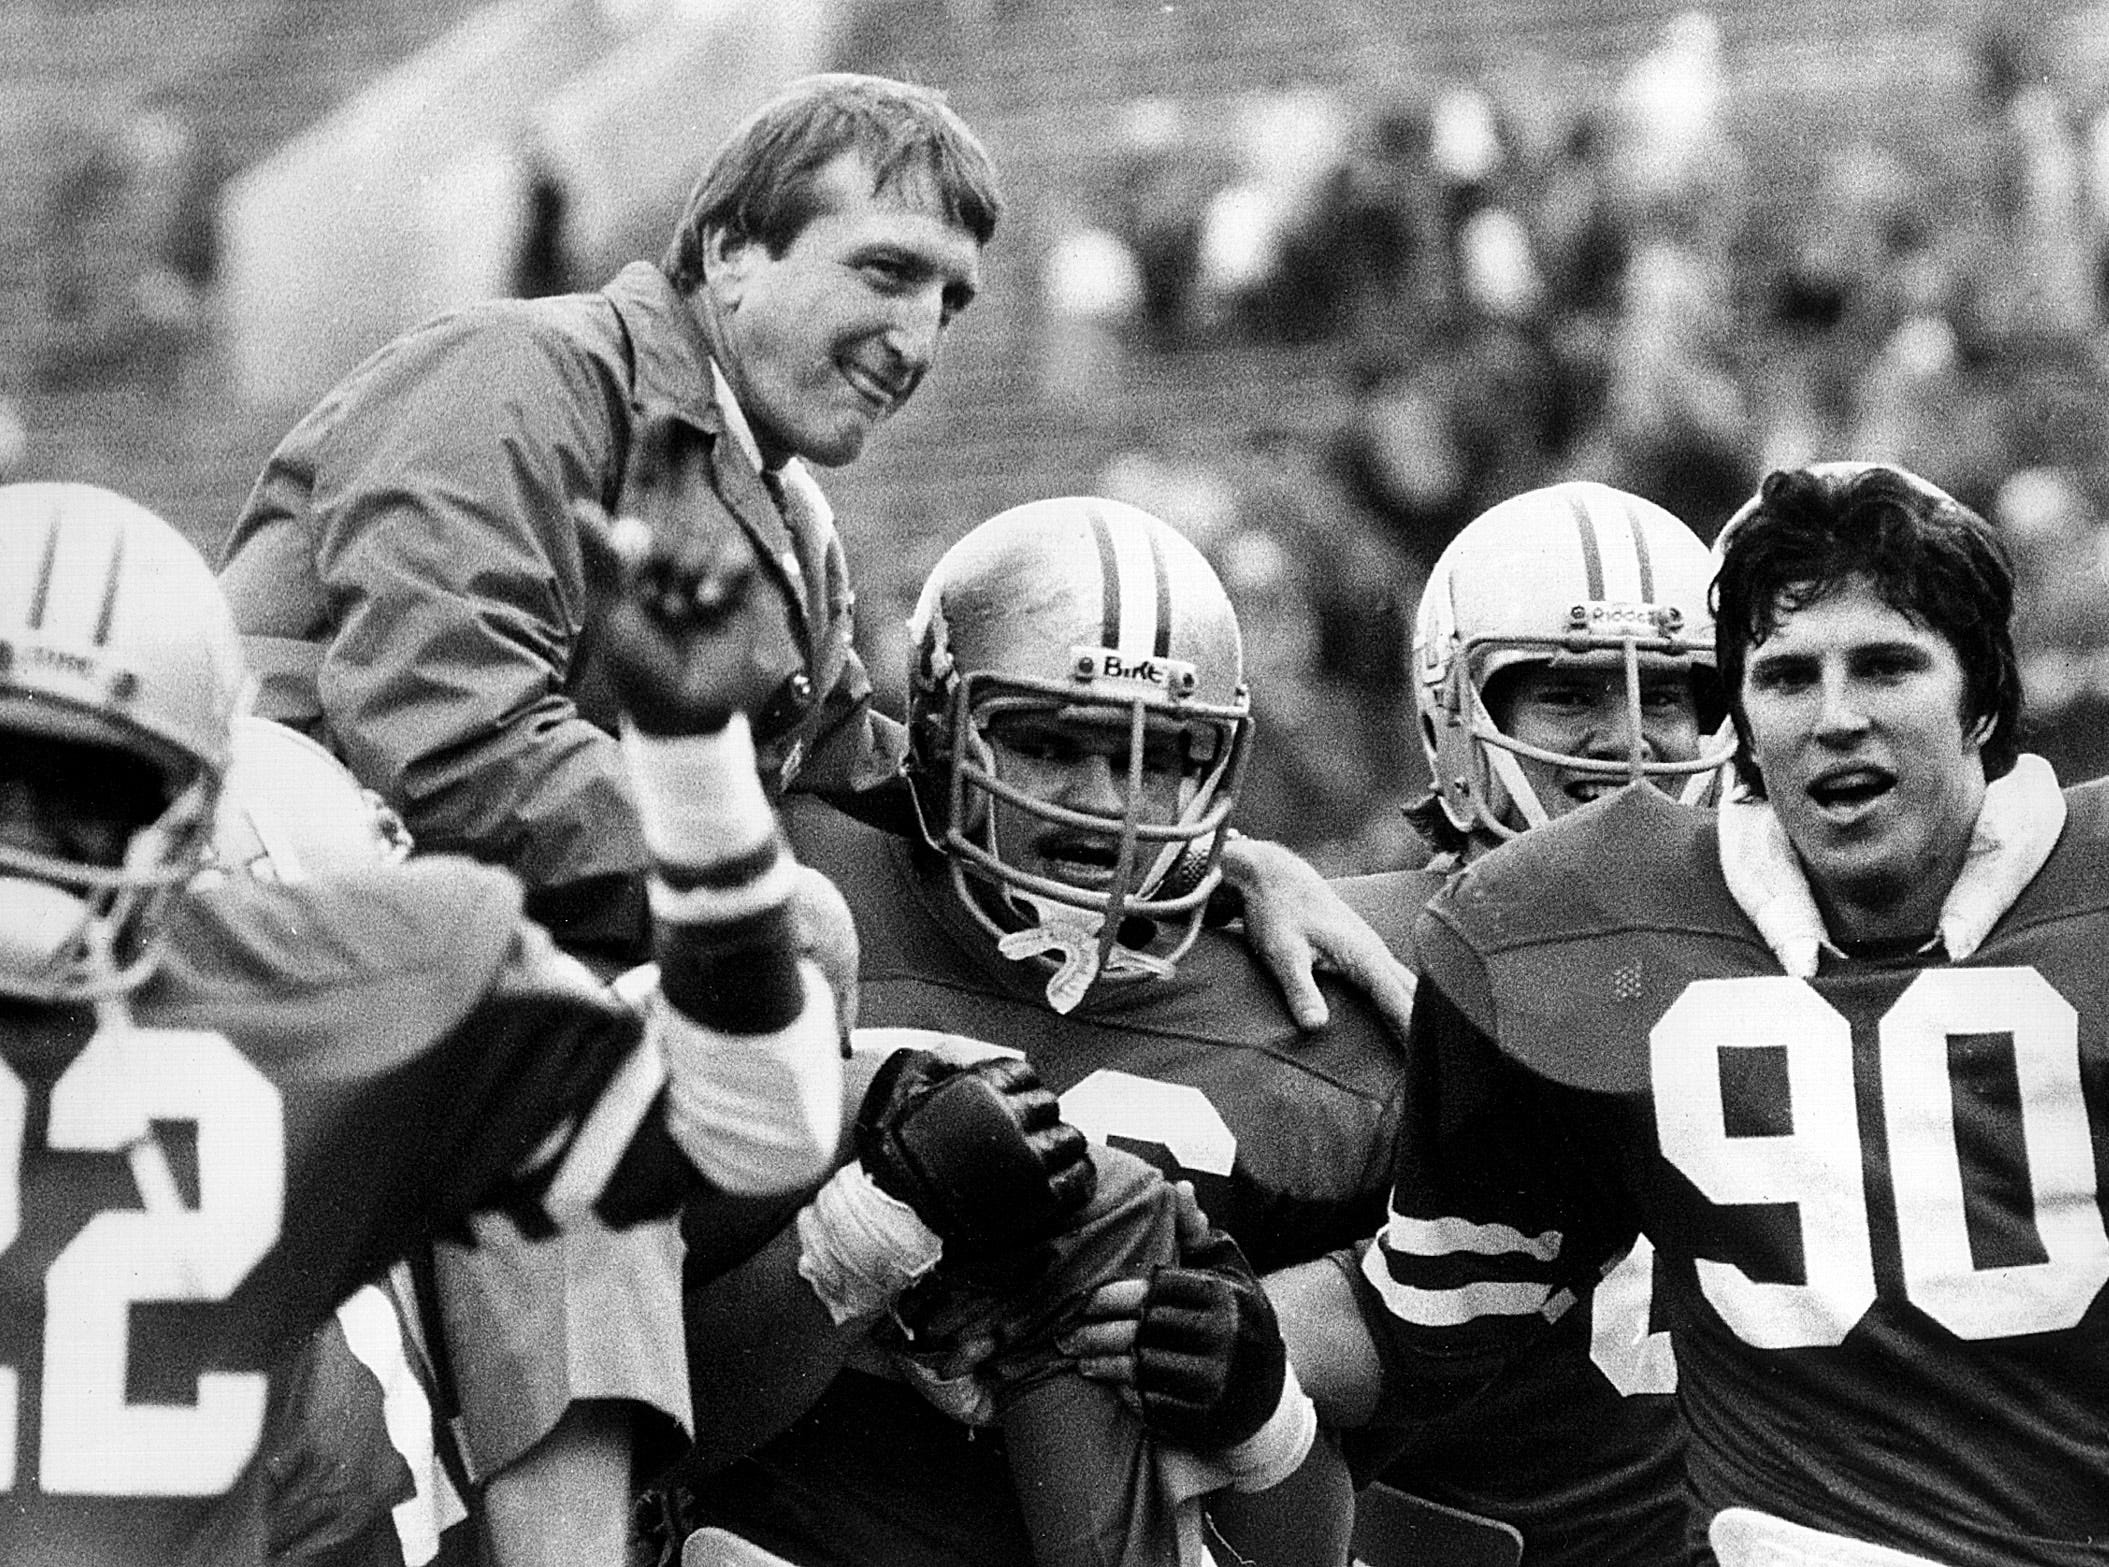 Memphis State head football coach Richard Williamson gets a ride on the shoulders of his Tiger players on Nov. 22, 1980, after beating Wichita State 6-0 to close out Williamson's stint as head coach of the Tigers. It was the 10th straight time the Tigers had beaten the Shockers. The Tigers finished the season with two wins and nine losses. Williamson finished with a 31-35 record as the Tigers' head coach. 10,069 watched the game played at Liberty Bowl Memorial Stadium.